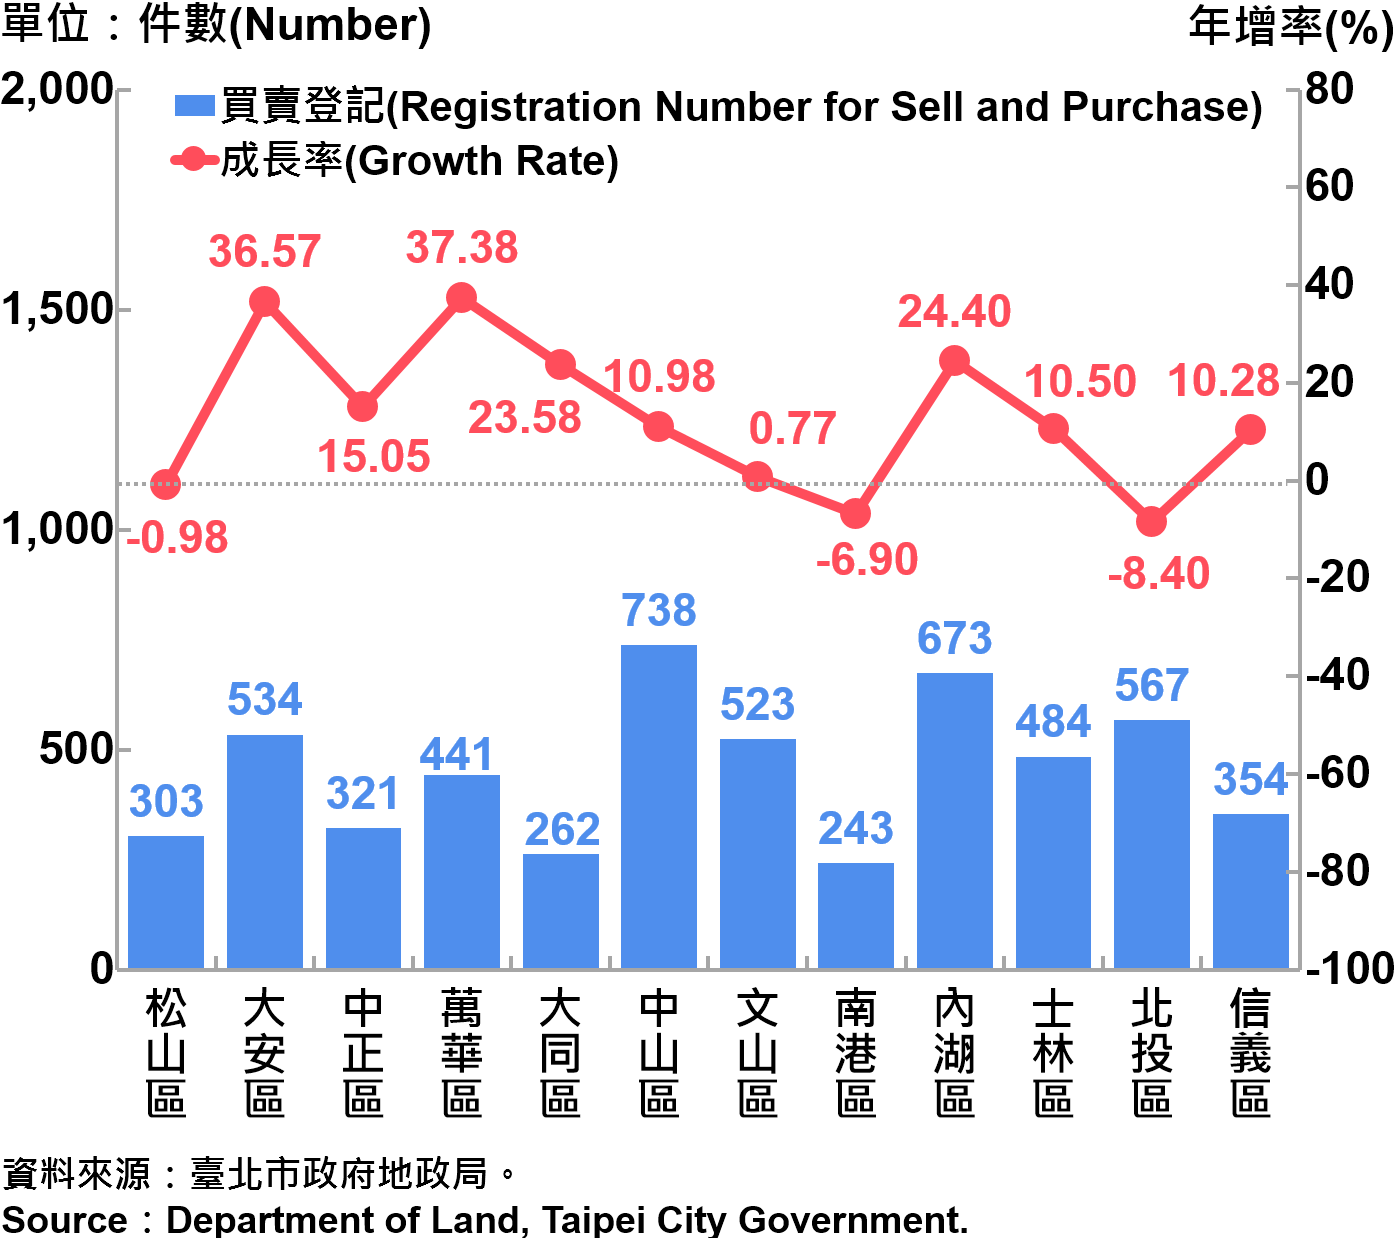 圖3、不動產買賣登記統計—依行政區分—2017Q2 Statistics for Trade in Real Estate Registration by Distinct—2017Q2